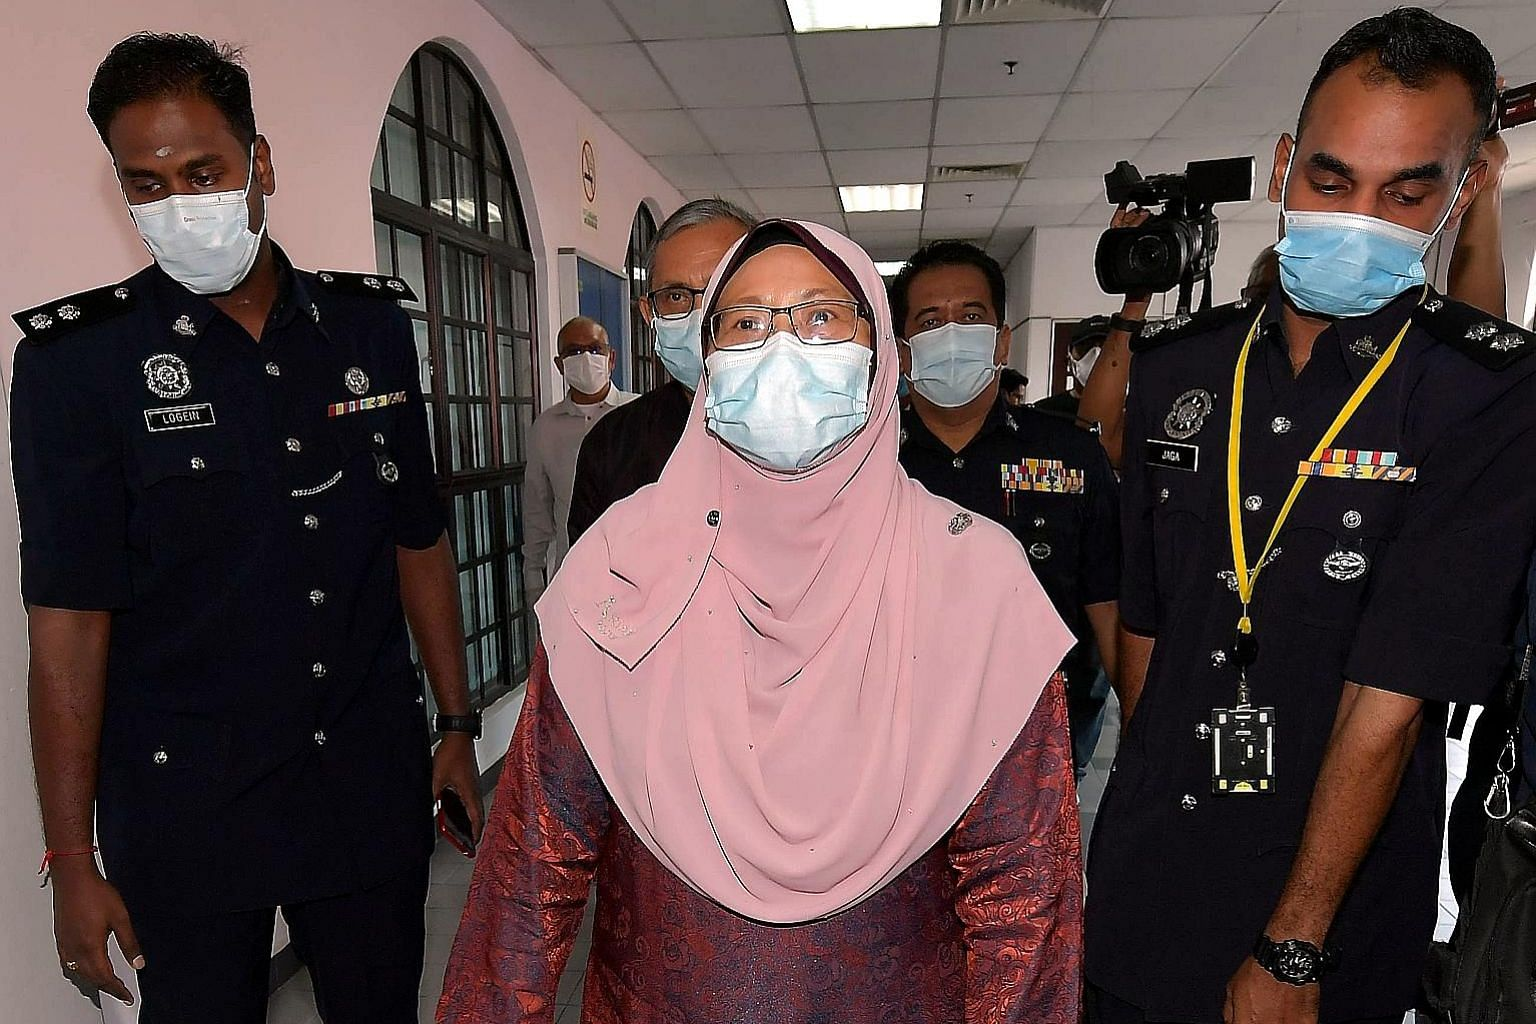 Fuziah Salleh was charged over a post with video she allegedly shared on Facebook that purported to show chaos at the Johor Baru Customs, Immigration and Quarantine Complex.